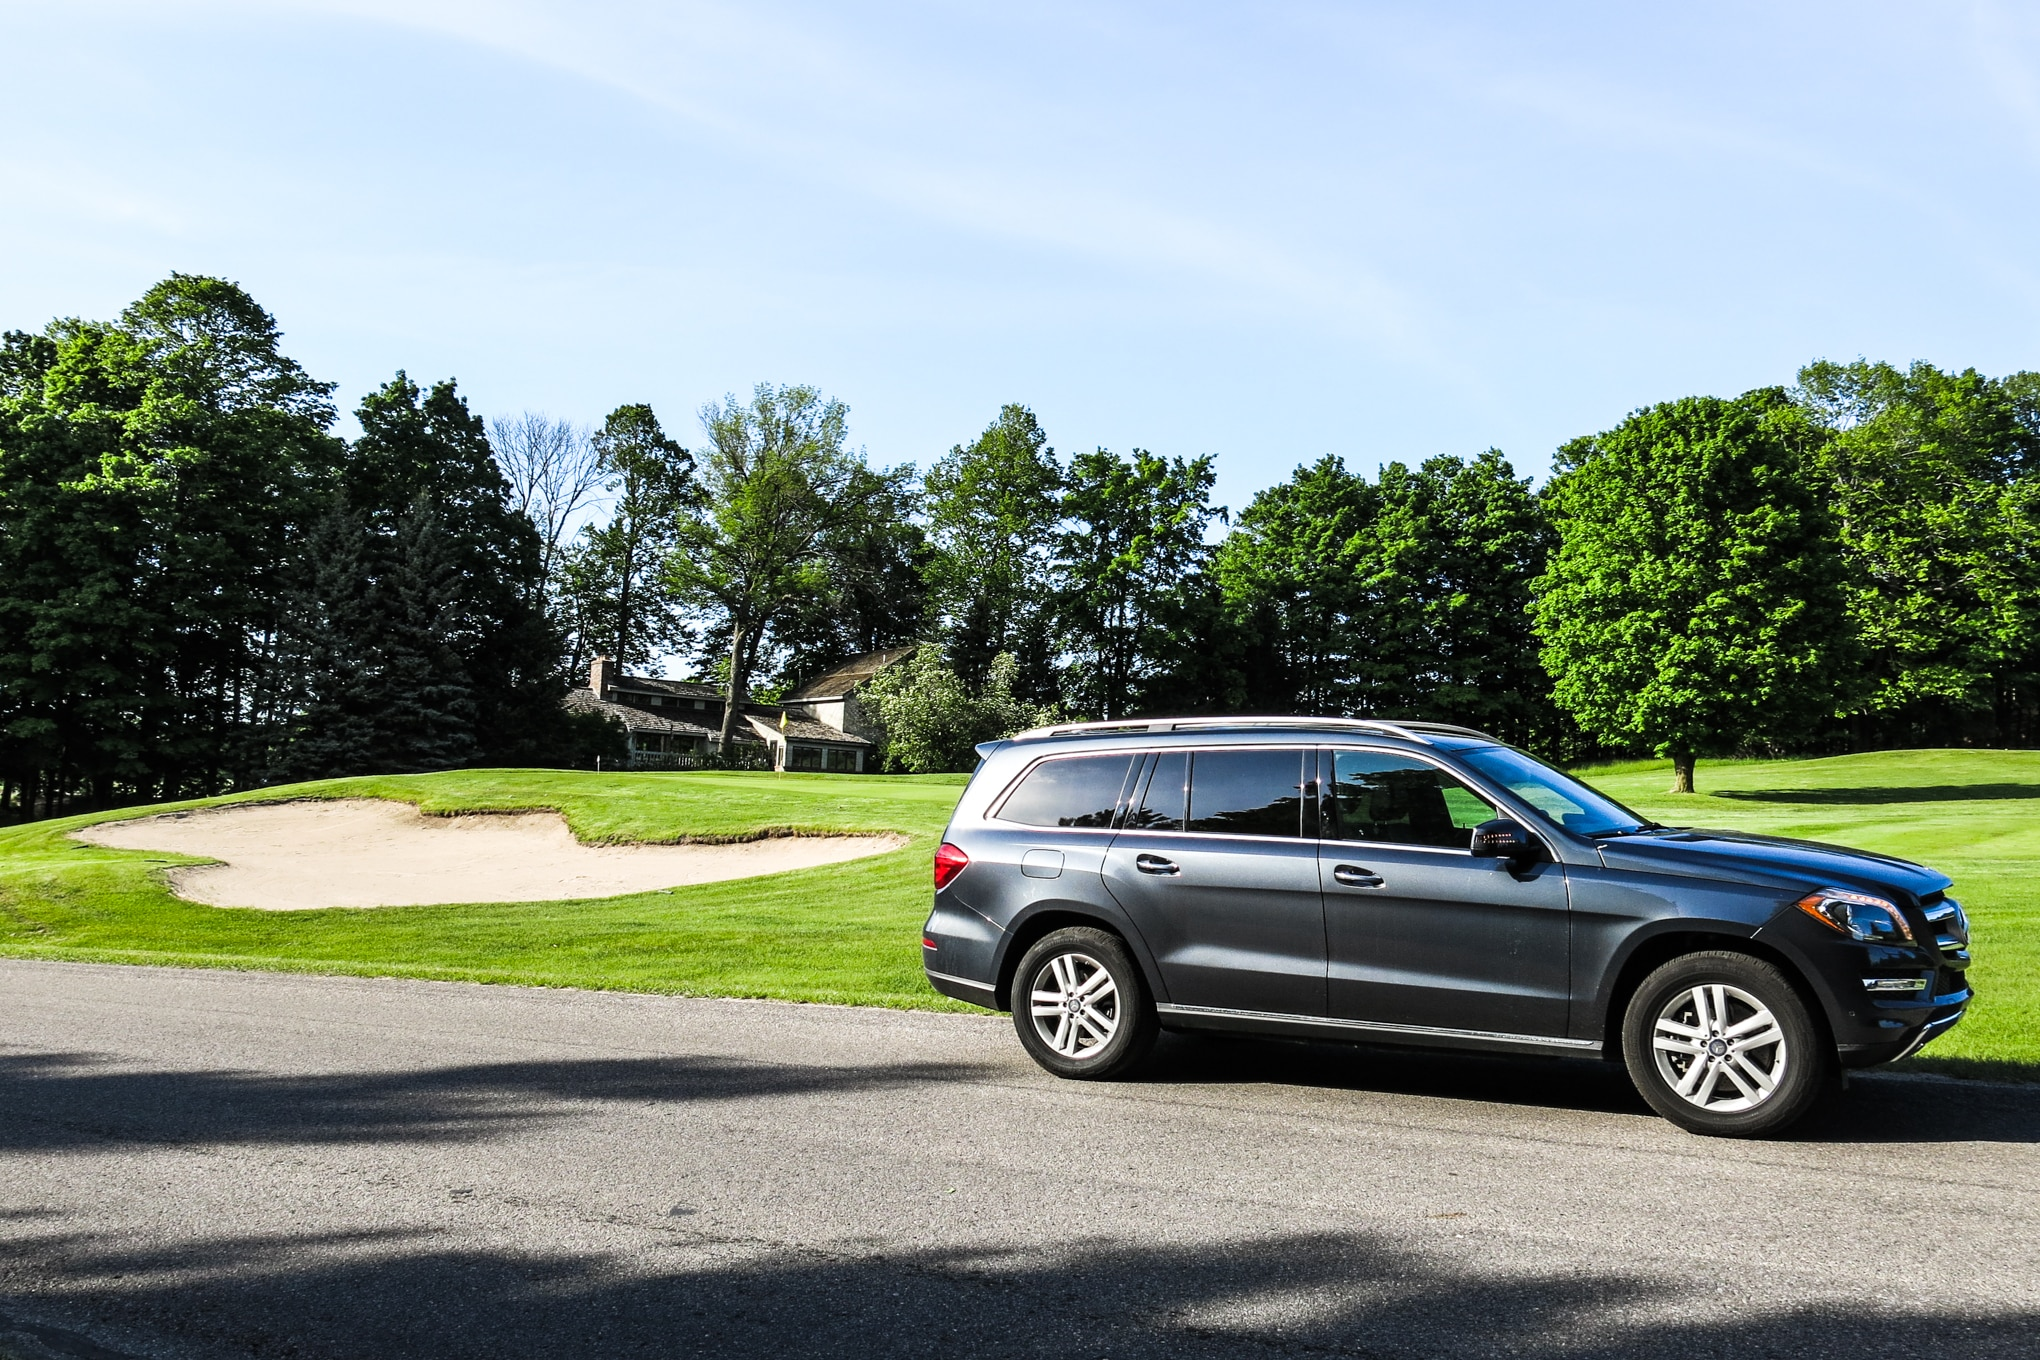 Mercedes Benz Fuse Box Diagram 2013 Four Simple Guide About Wiring C180 Diagrams Ml450 14 Images